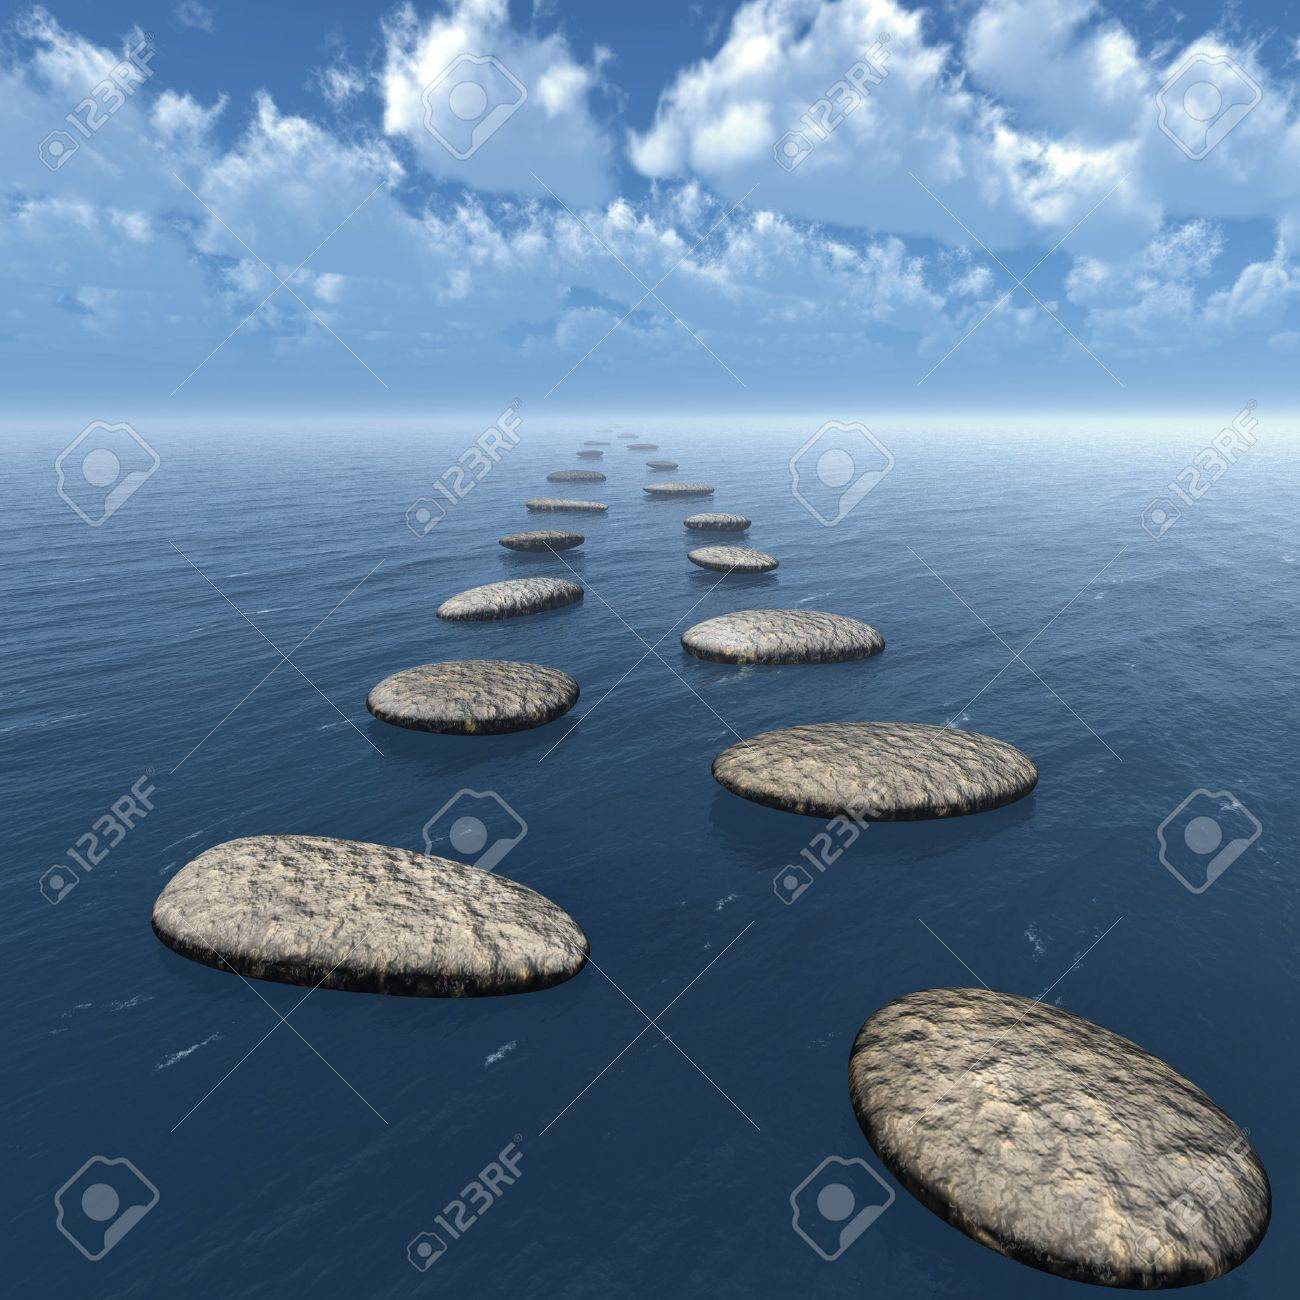 The stones in the water. Blue colour sky Stock Photo - 14216312